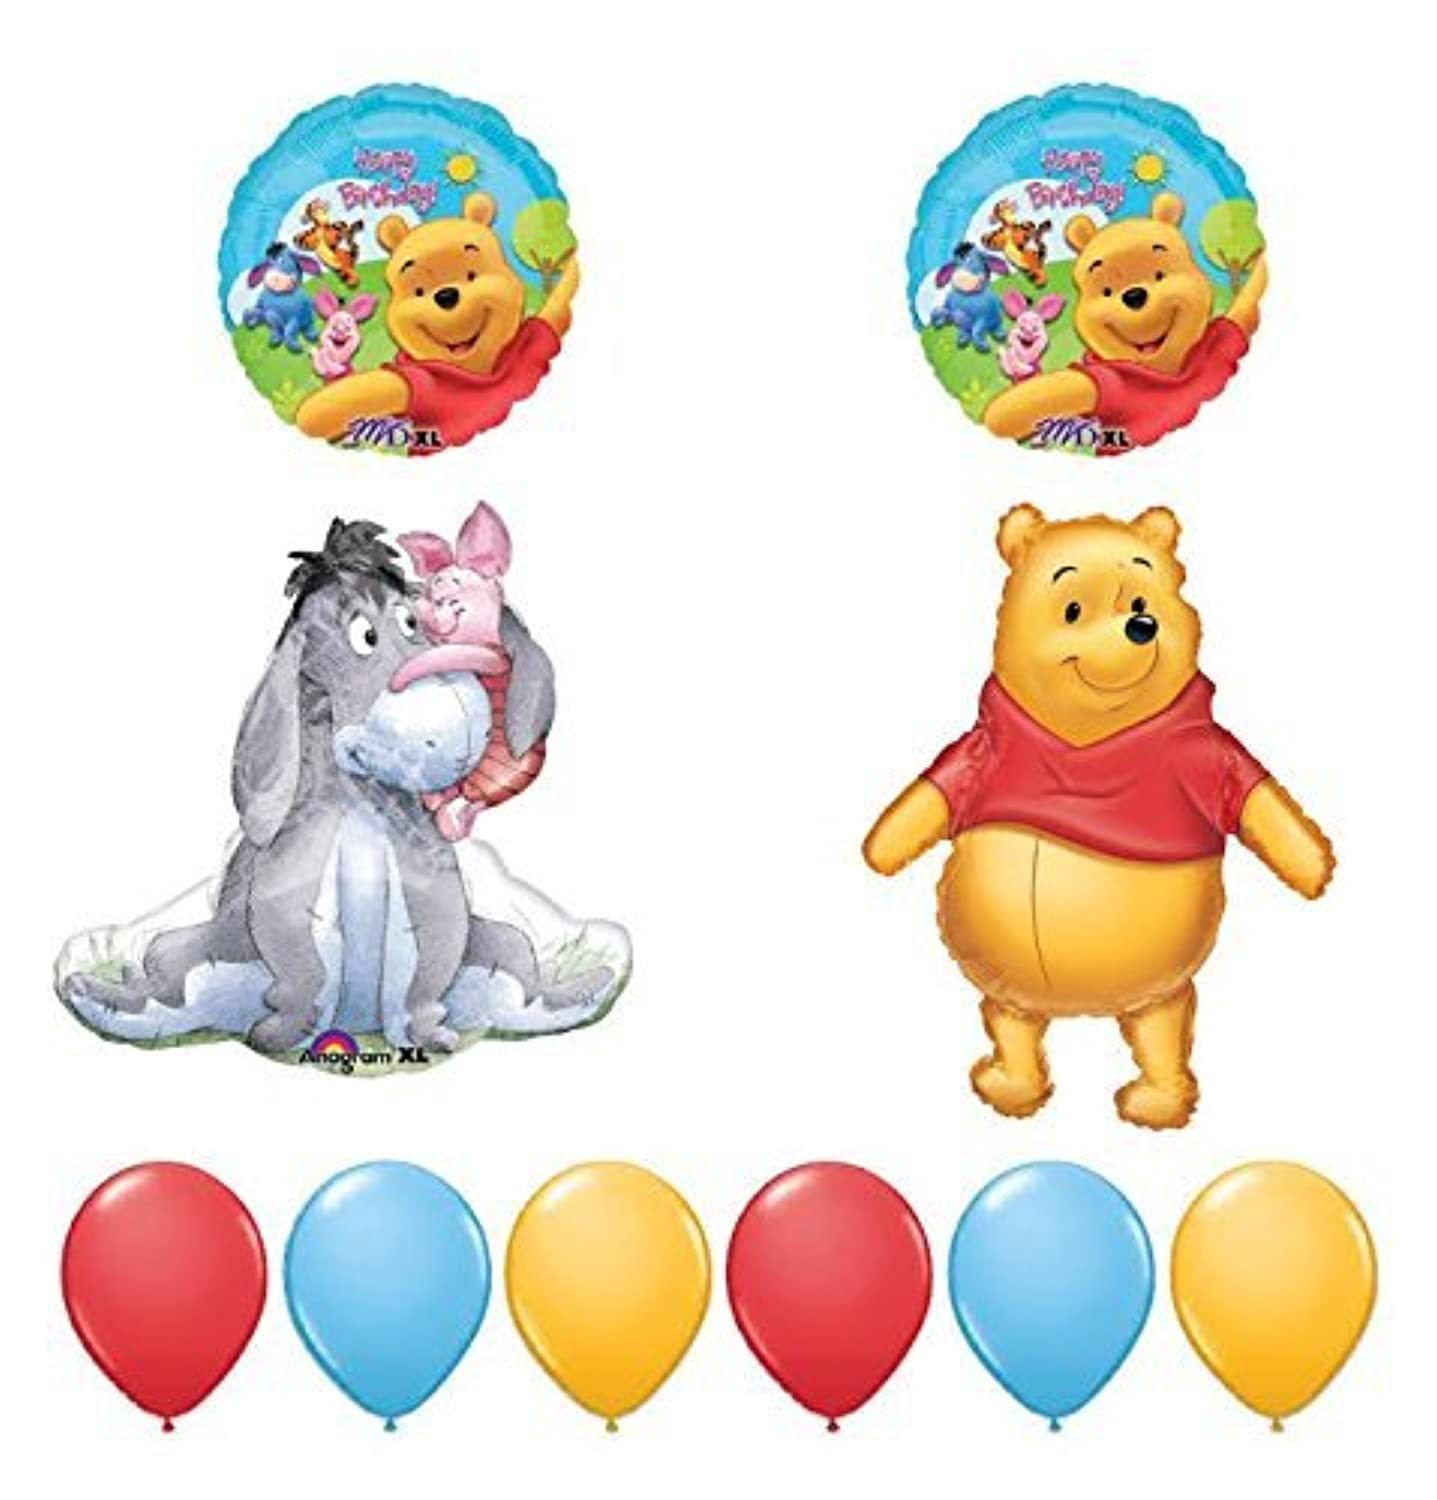 Winnie the Pooh and Friends 10pc誕生日パーティーバルーンデコレーションby Anagram